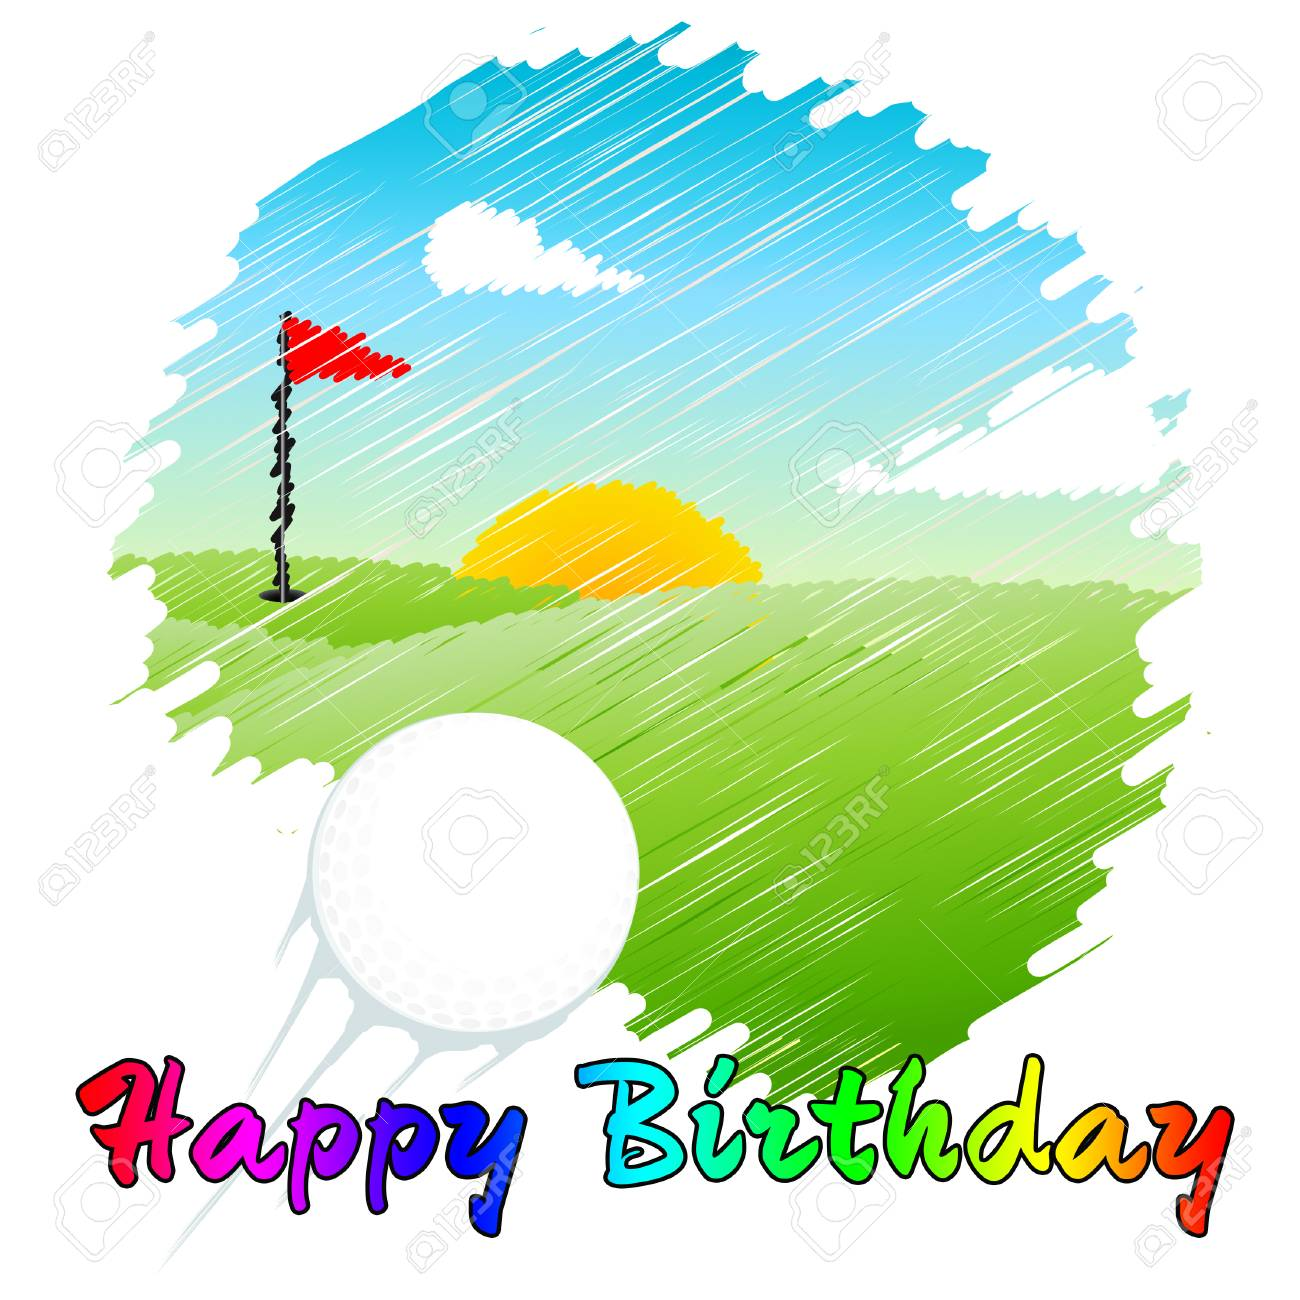 Happy Birthday Golfer Message As Surprise Greeting For Golf Player Congrats Golfing Fanatic